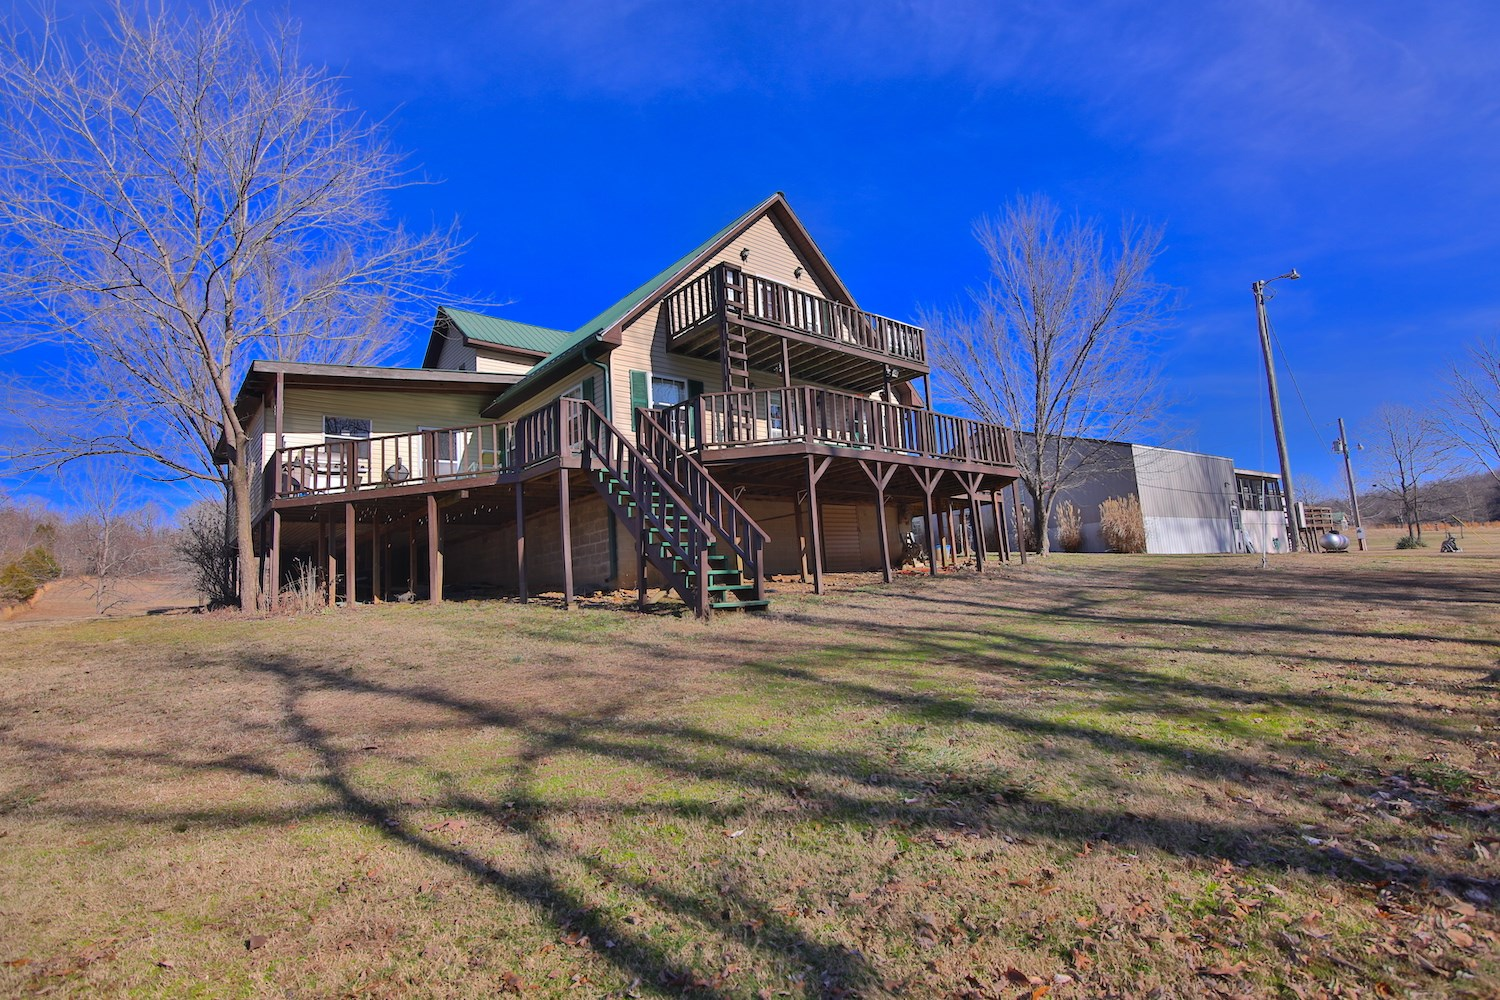 Home for Sale on Spring River